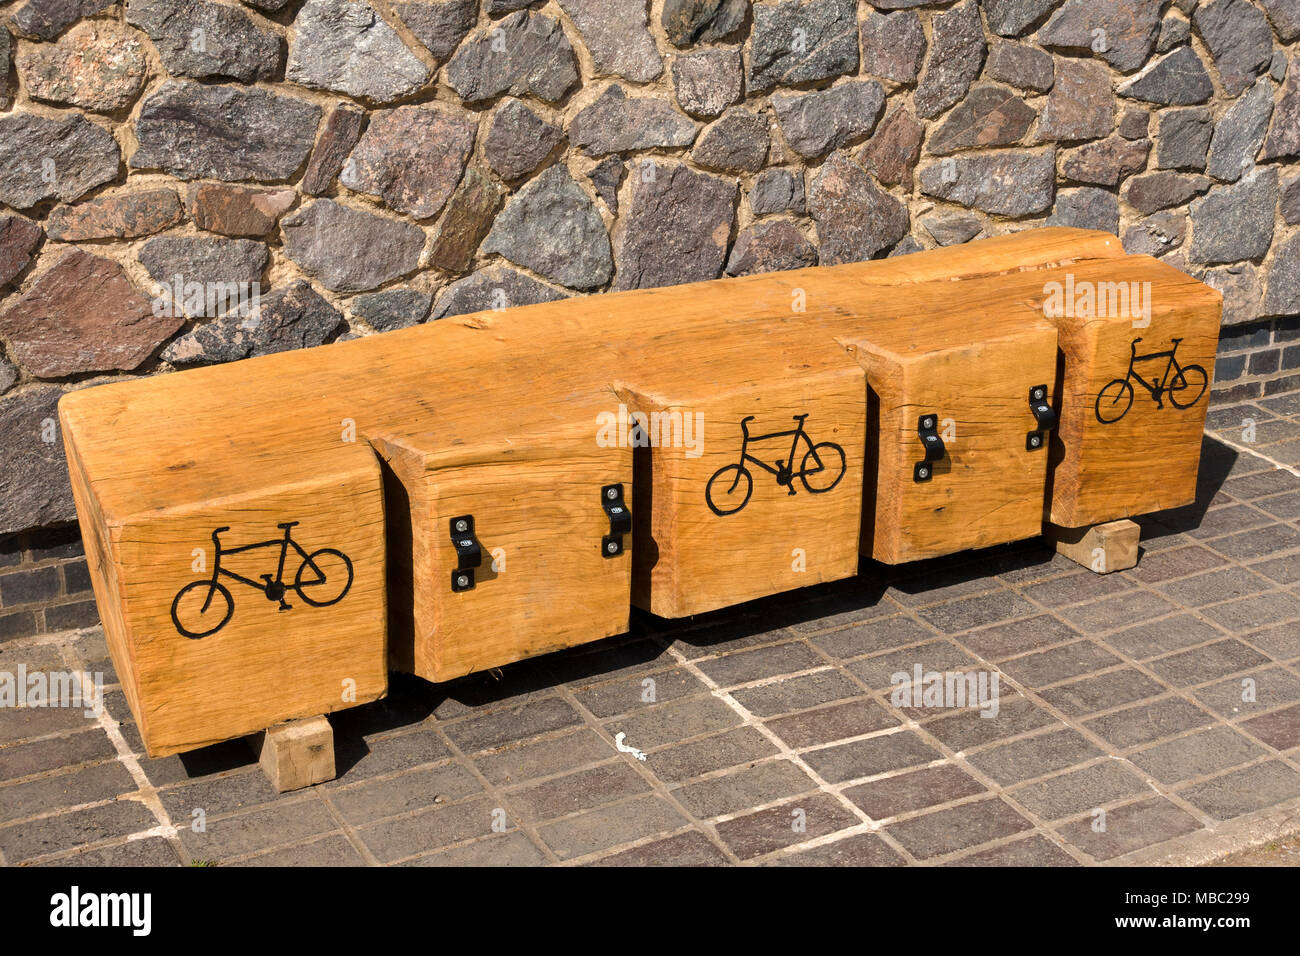 Large wooden log cut with slots to make a cycle rack Stock